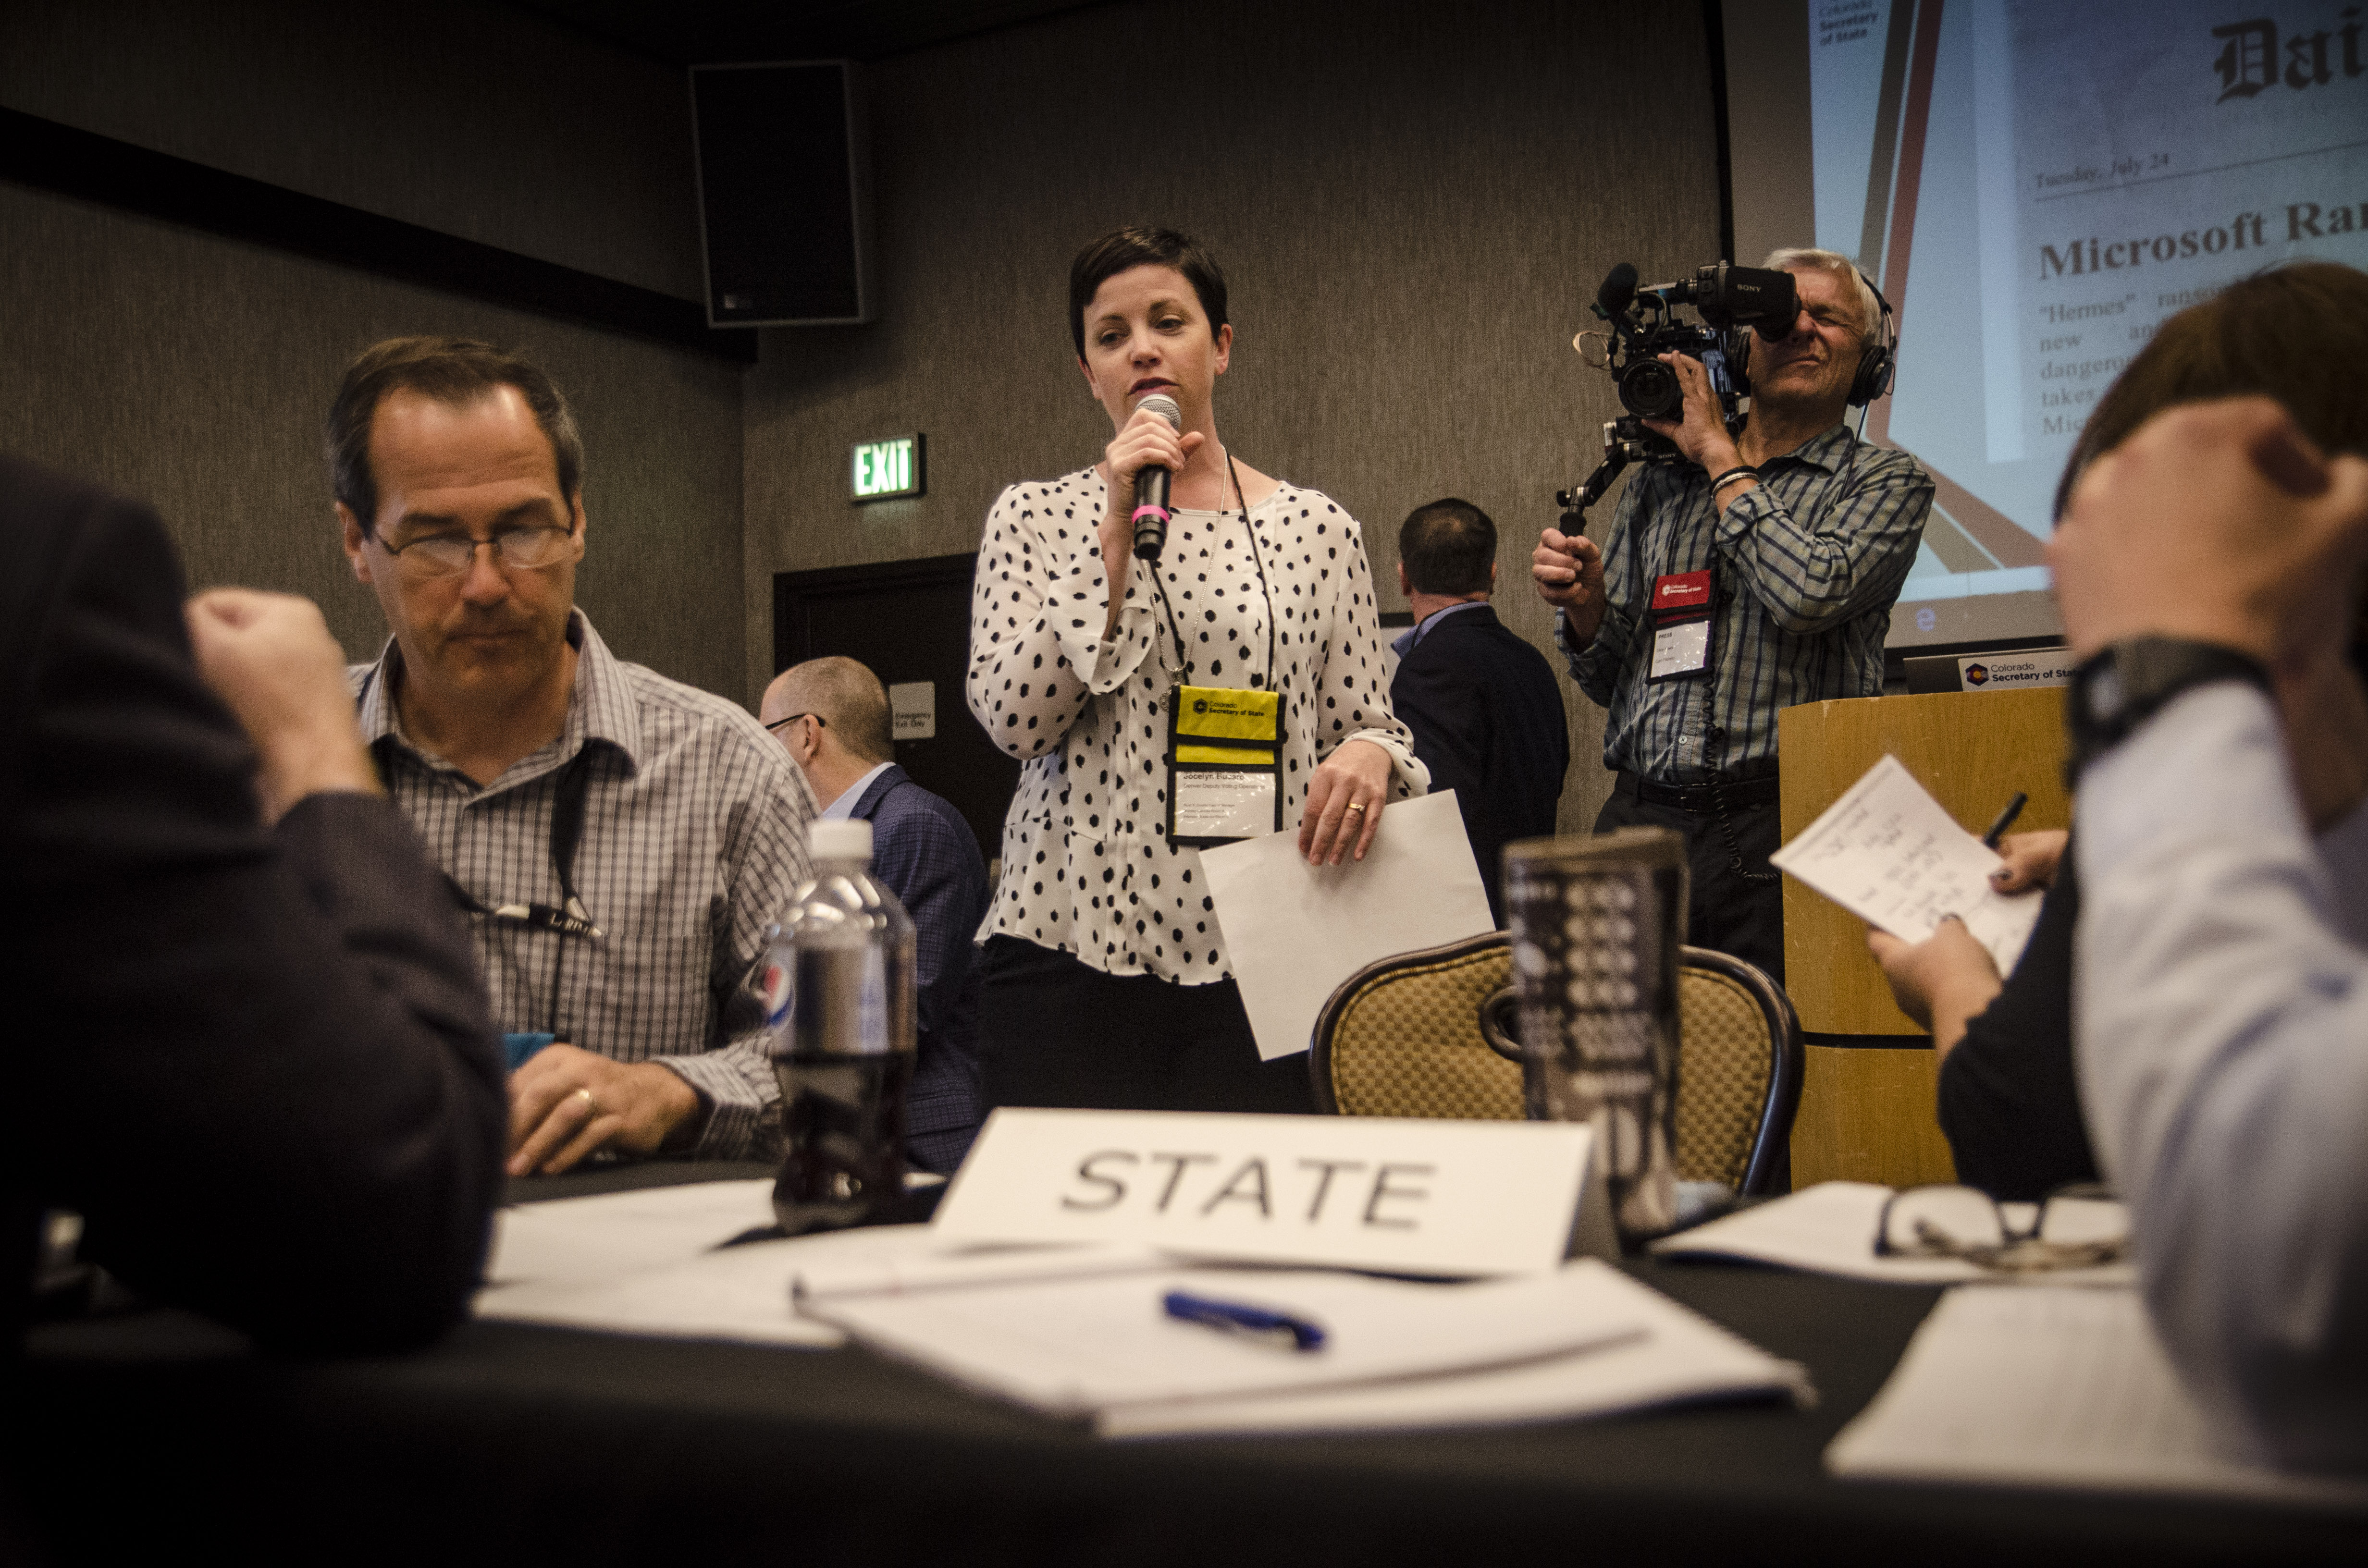 """<p>Jocelyn Bucaro, with Denver's Elections Division, participates in a """"war game"""" meant to train elections officials on how to deal with various disasters and attacks at a hotel in suburban Denver, Thursday, Sept. 6, 2018.</p>"""